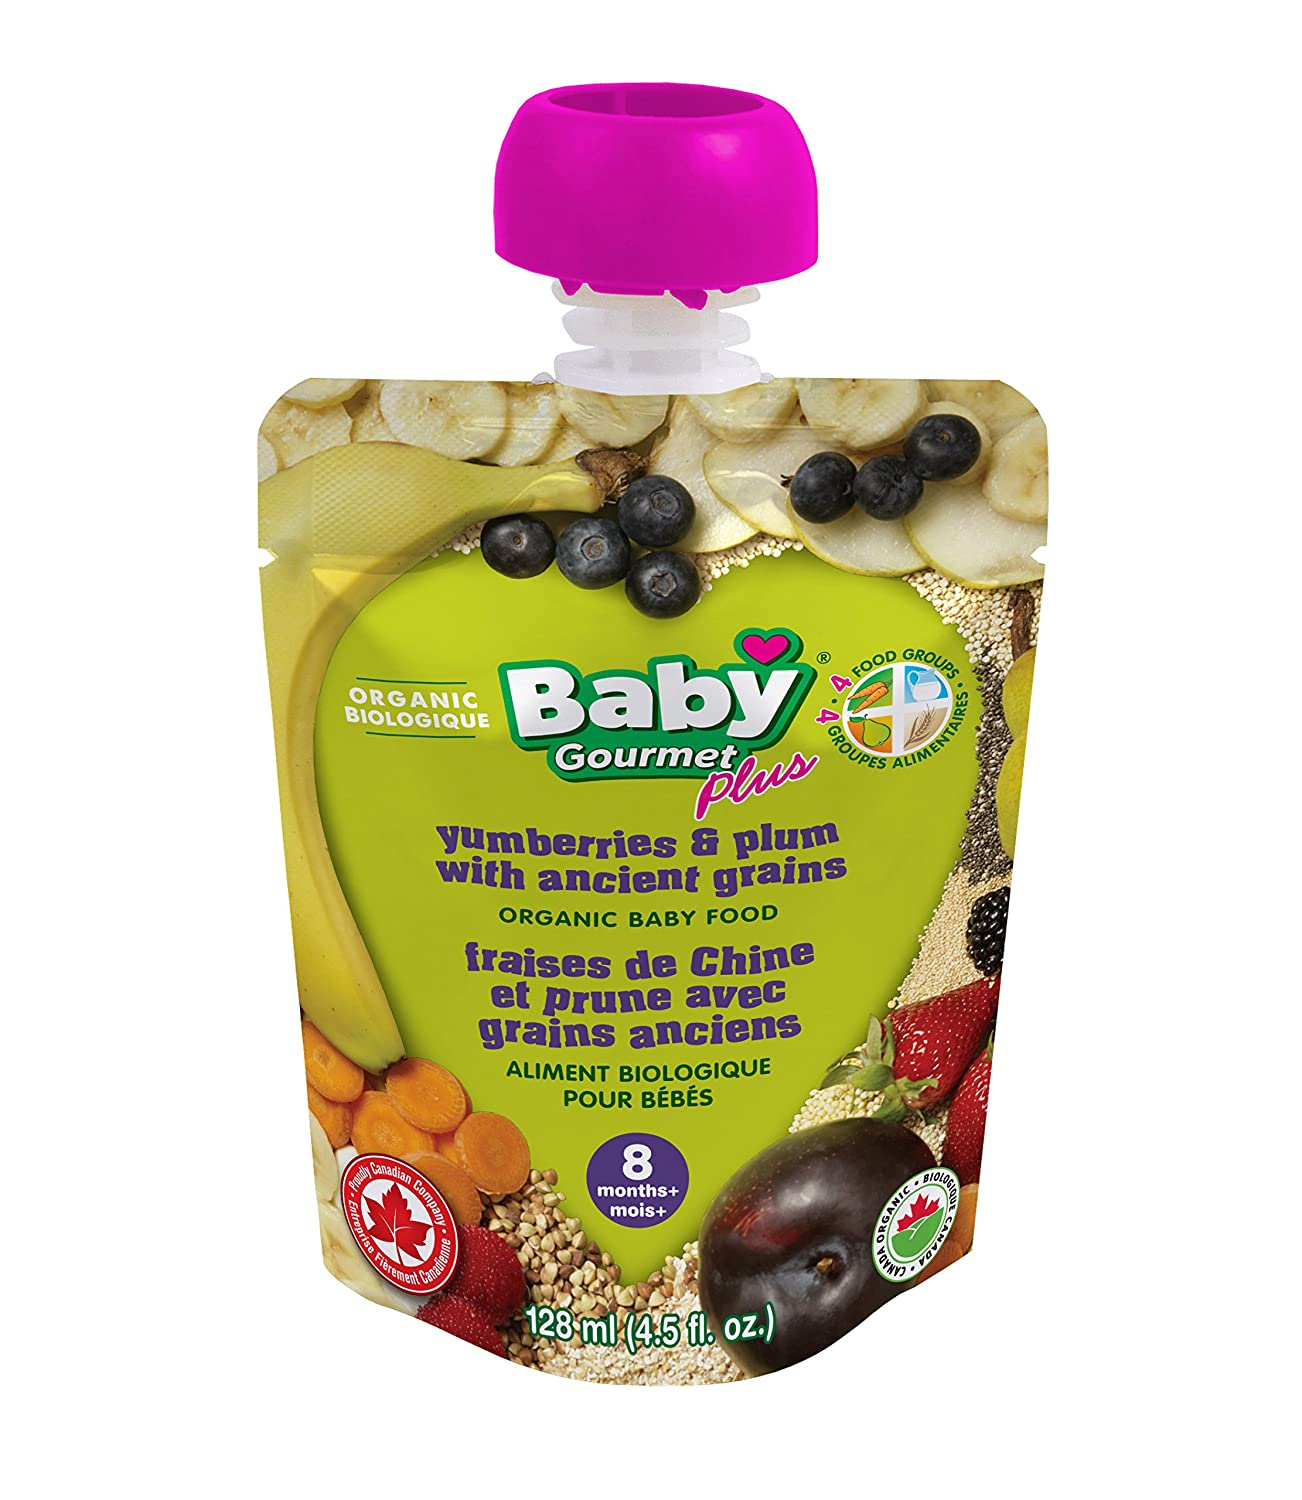 Baby Gourmet PLUS Yumberries & Plum with Ancient Grains (Pack of 12) YMBP4BGCSCD0012